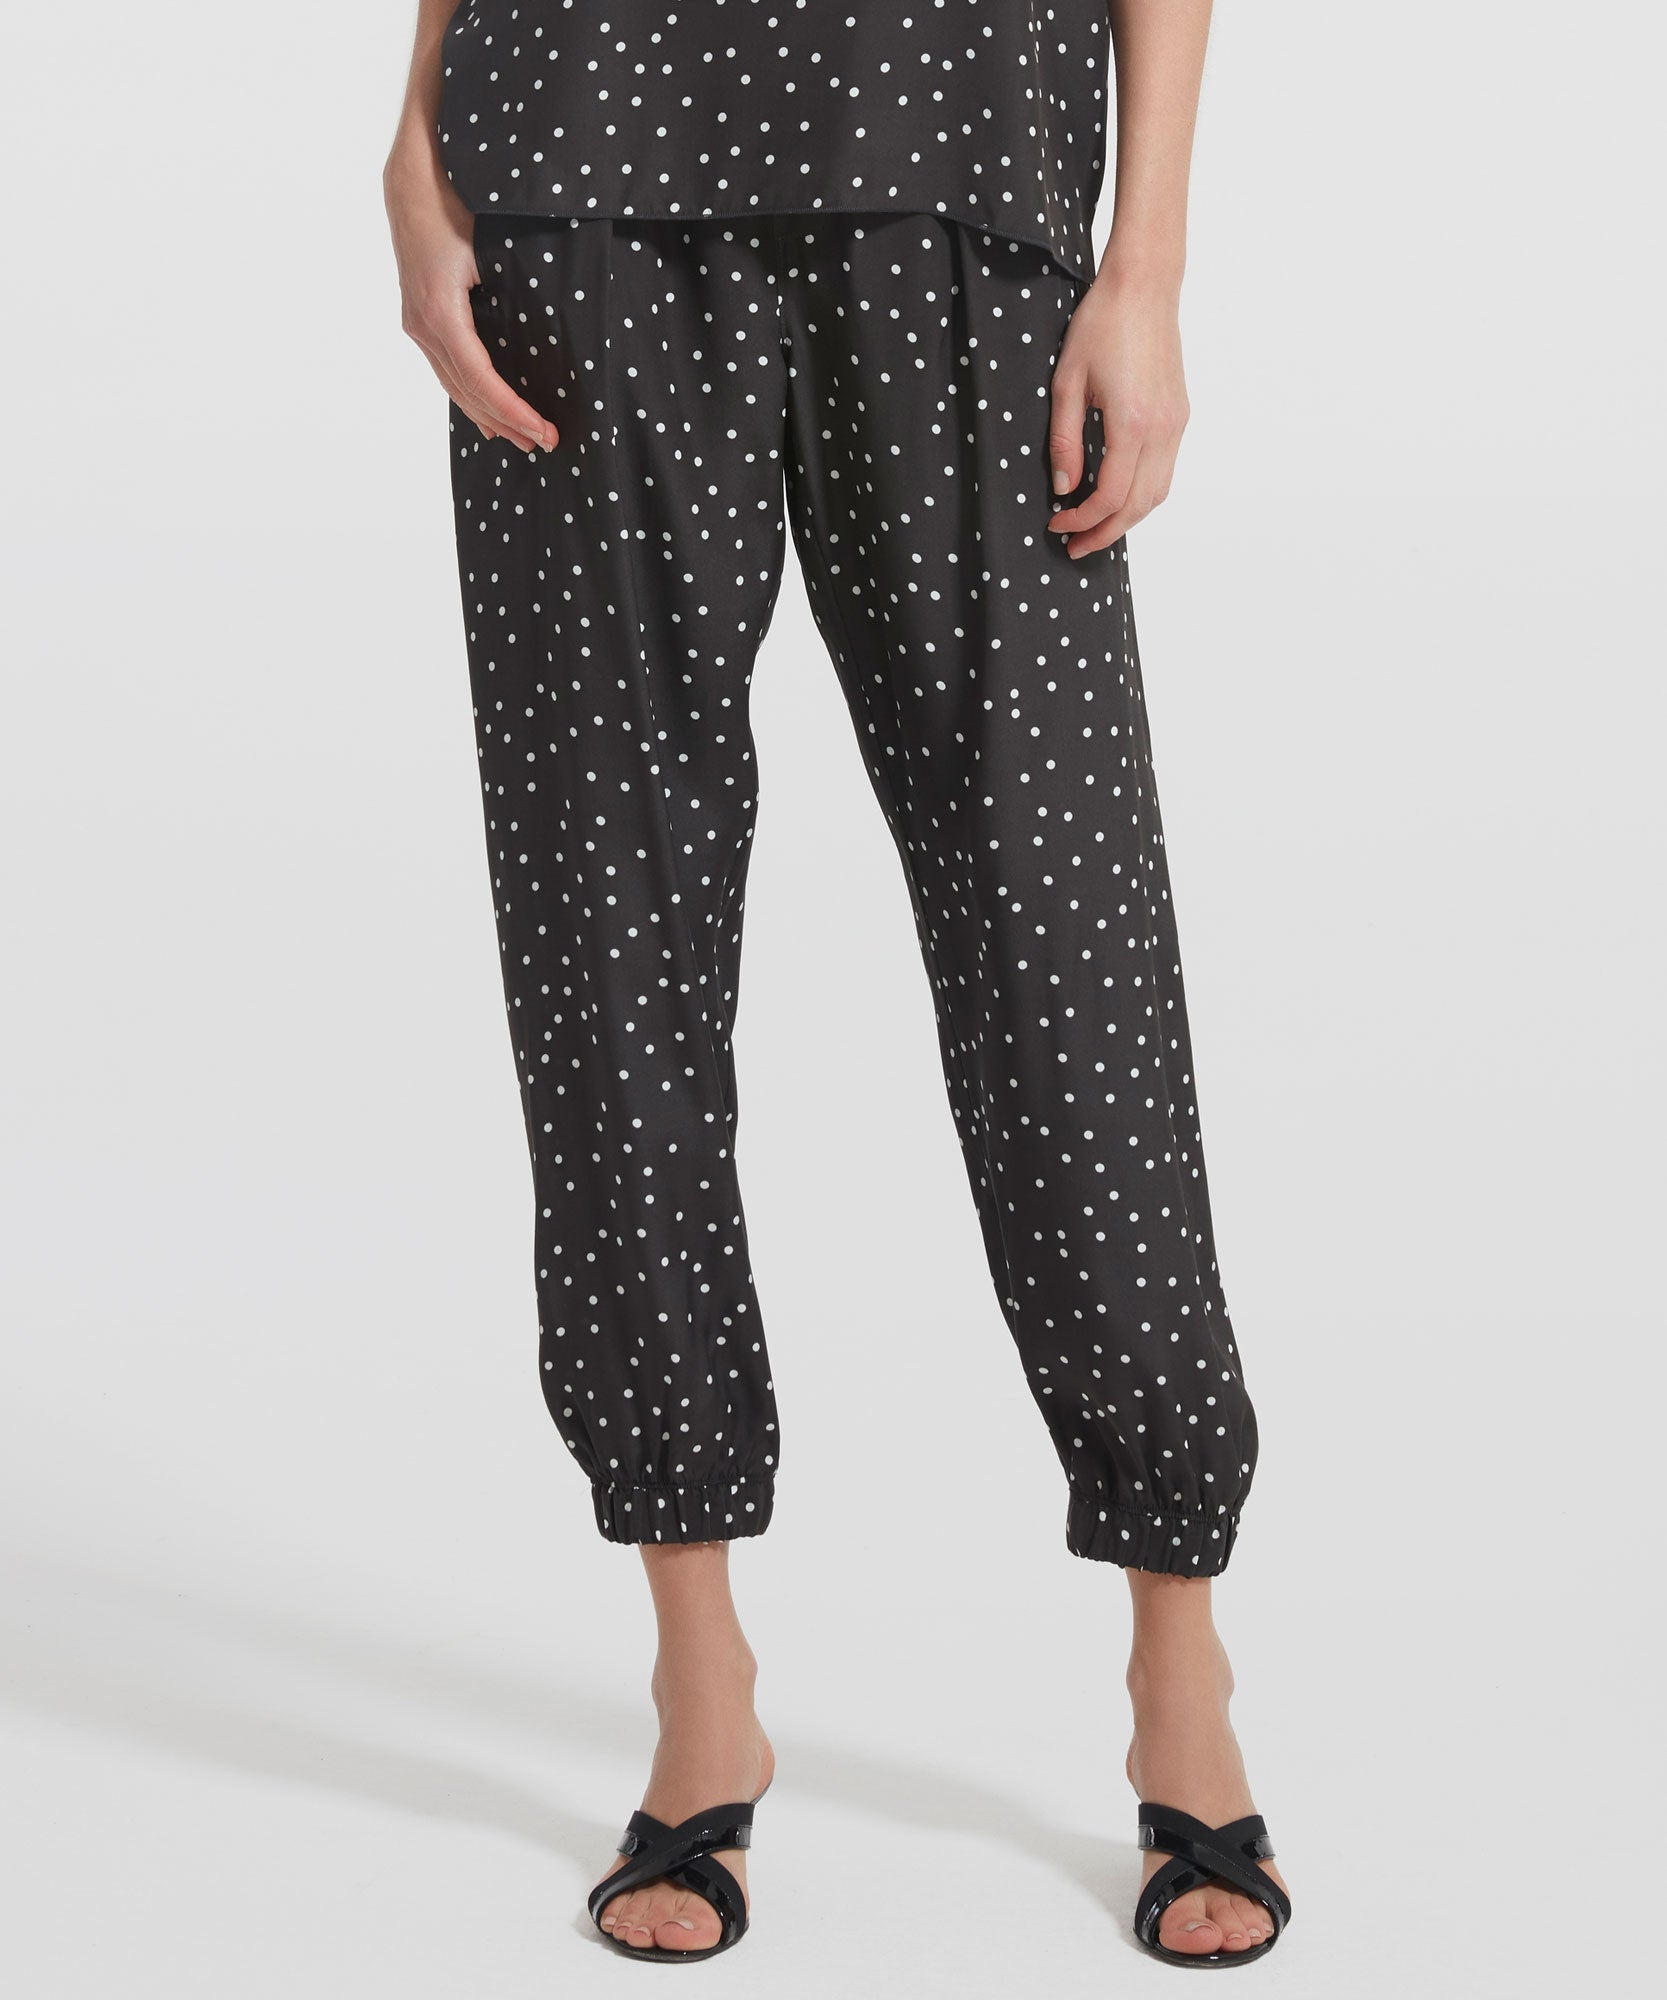 Pavement Polka Dot Silk Sweatpants - Women's Silk Pants by ATM Anthony Thomas Melillo